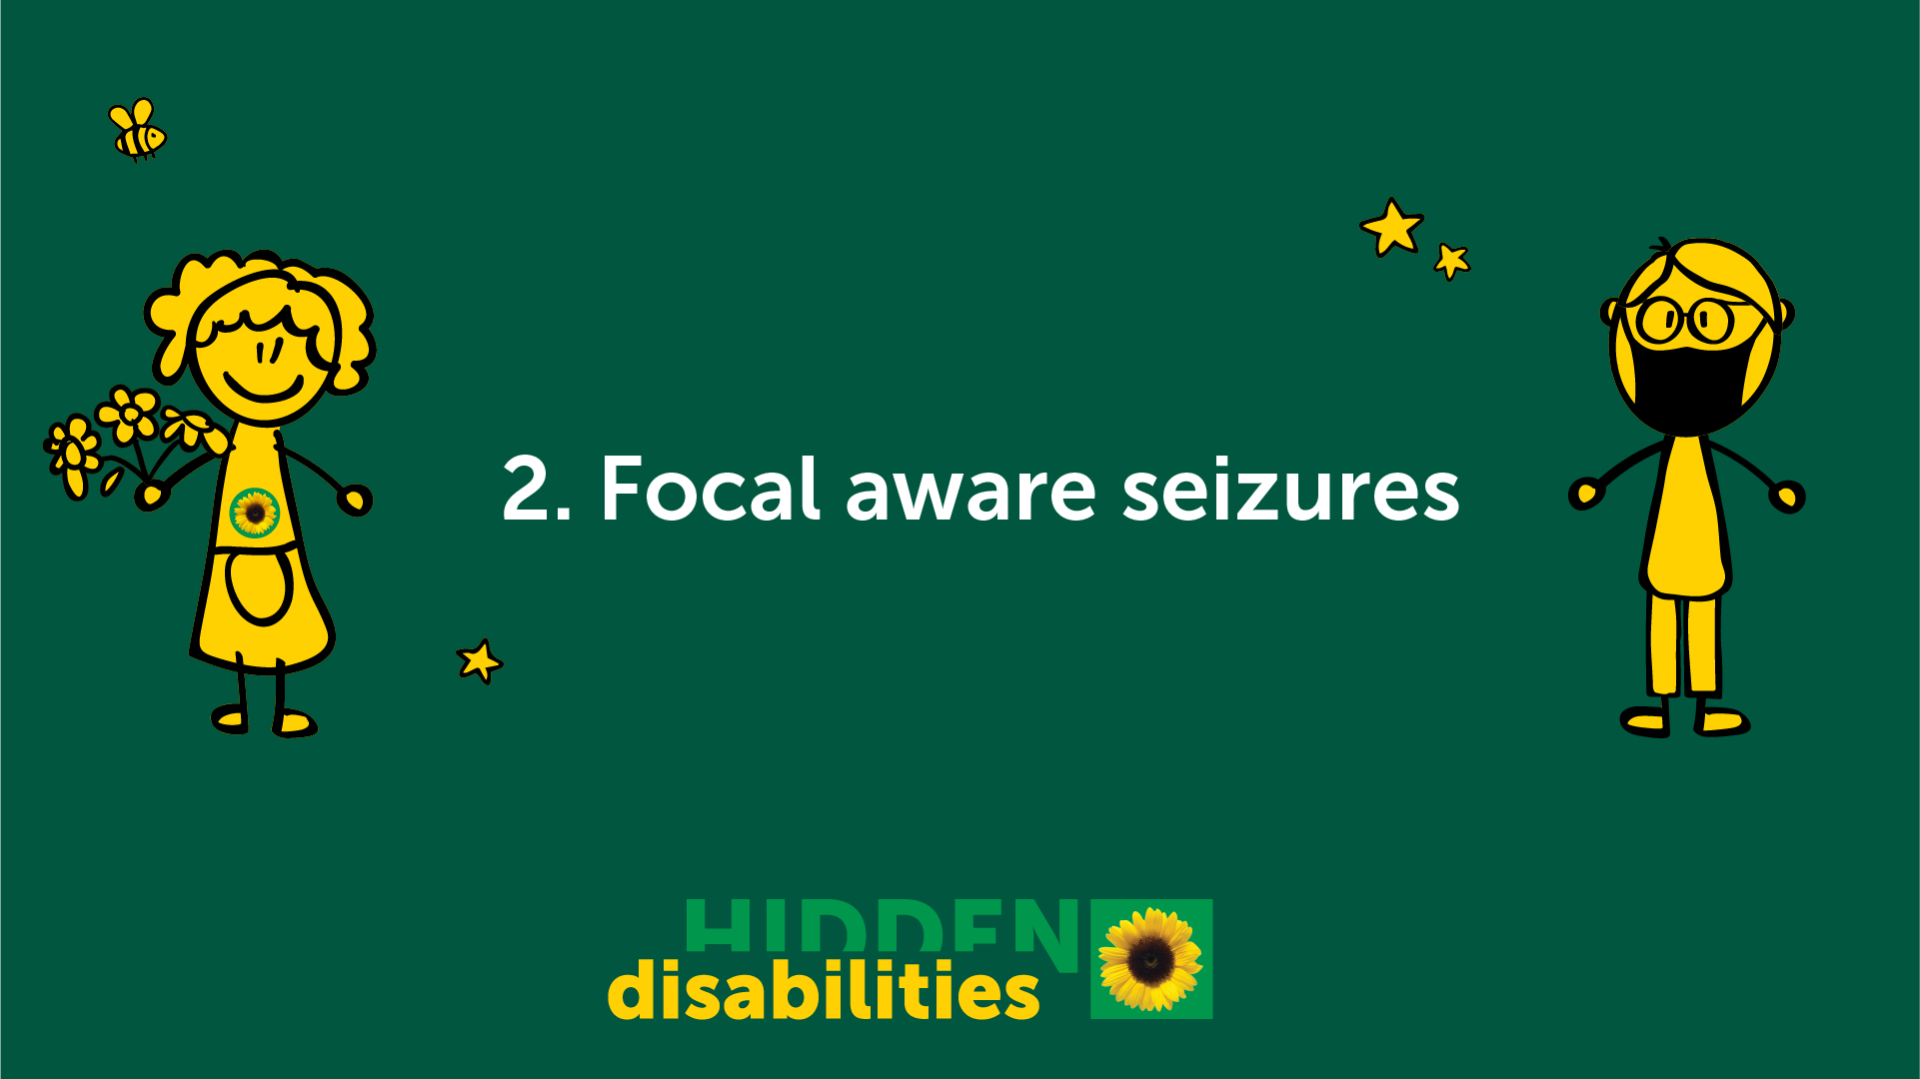 Focal aware seizures